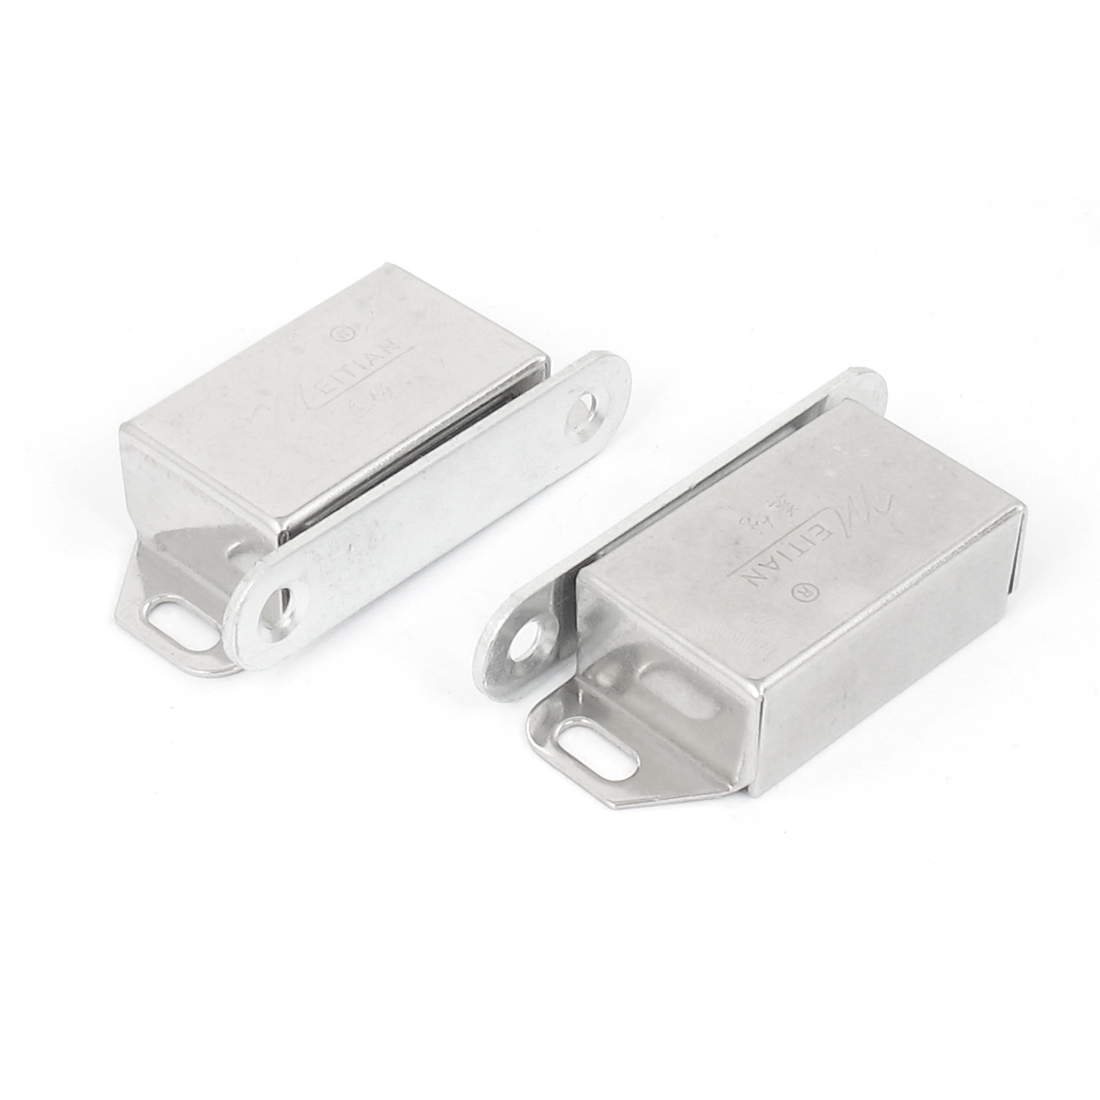 Cabinet Cupboard Door Stainless Steel Magnetic Catch Latch Holder Silver Tone 2pcs